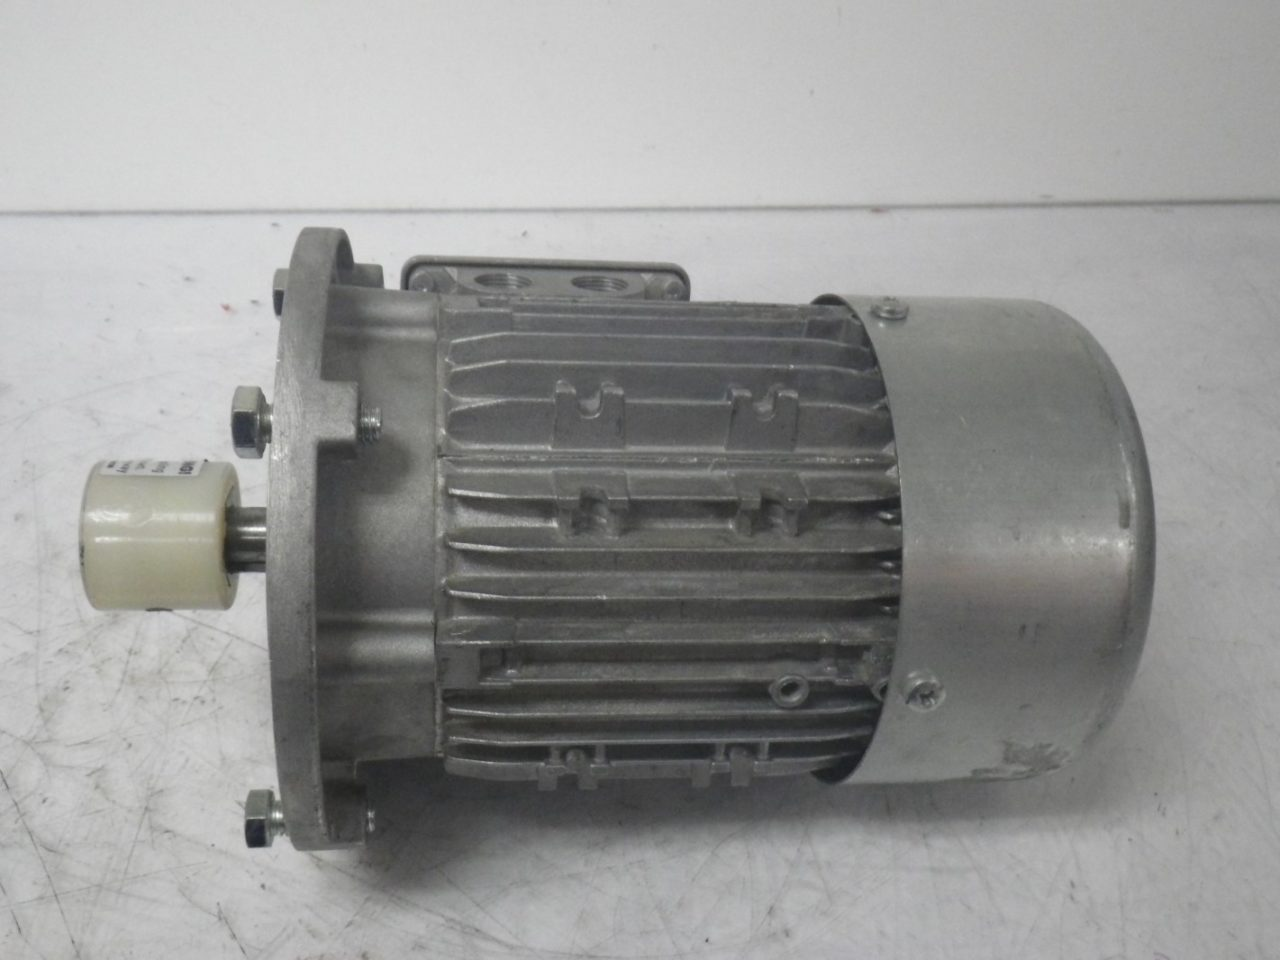 IMGP653671 S4 OJS NM321100120847-SYST.DVI55J NORD Motor 3ph 1.15sf ip55 1710rpm (1)